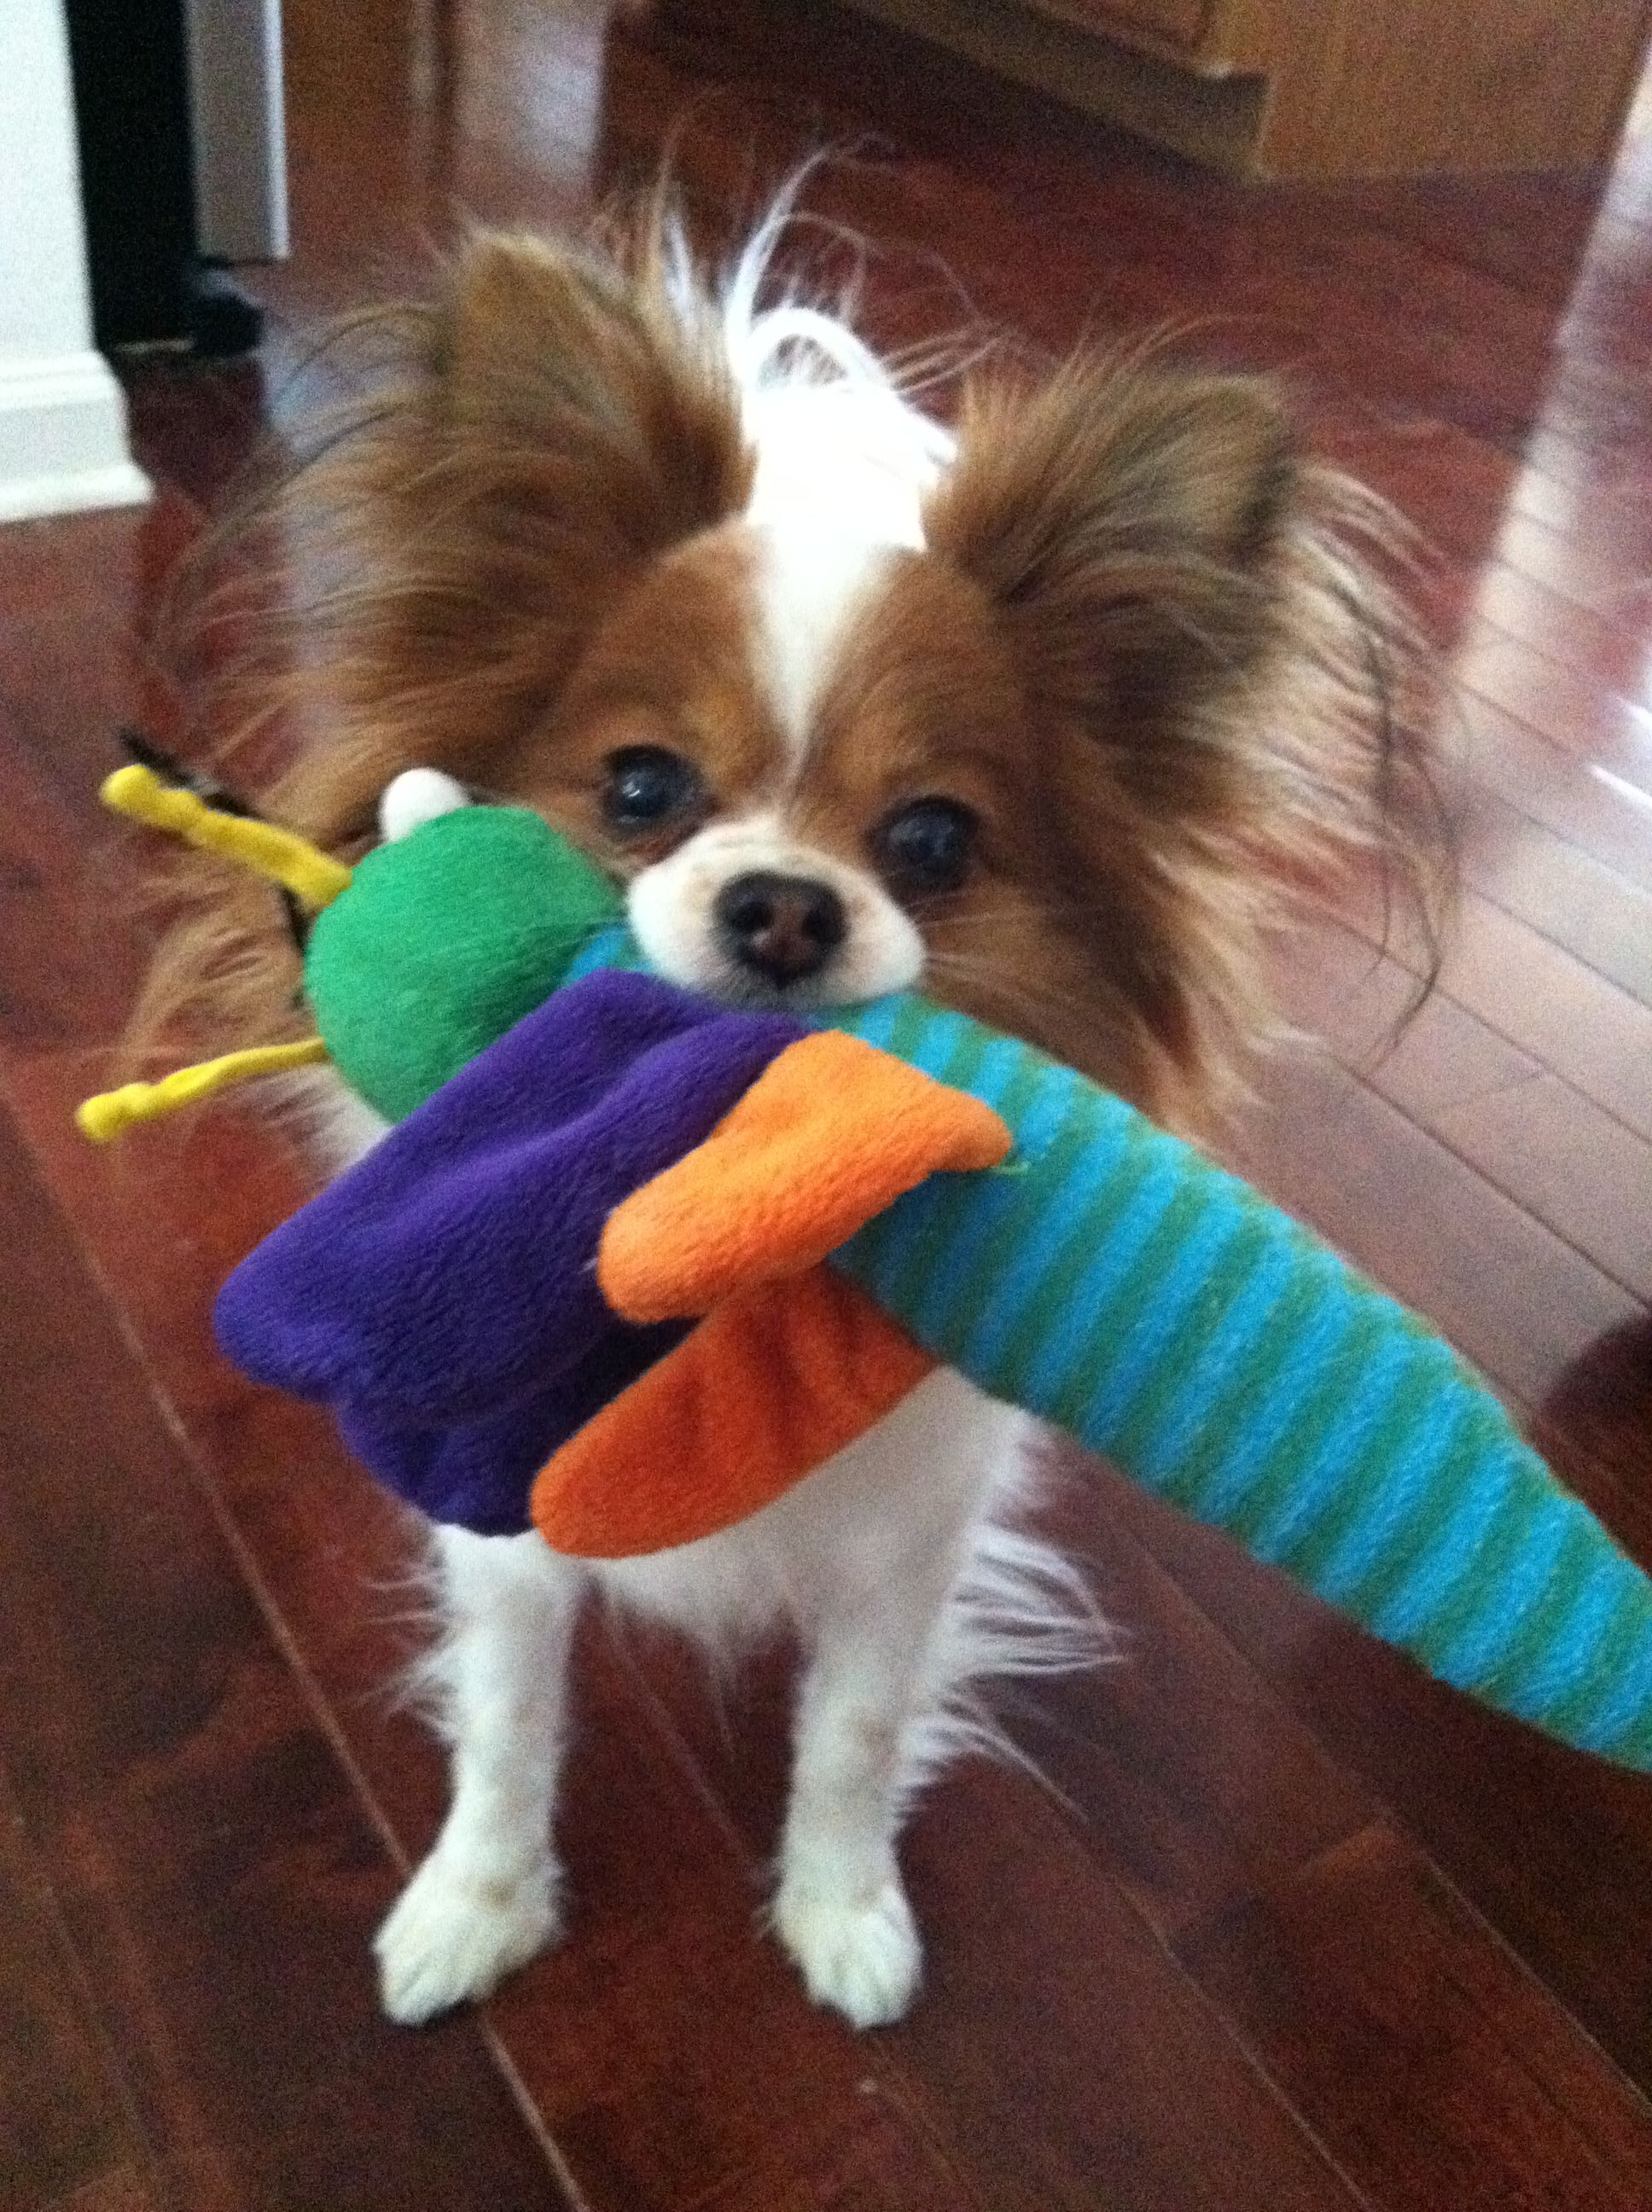 What An Adorable Papillon My Pap Runs Around With A Toy In Her